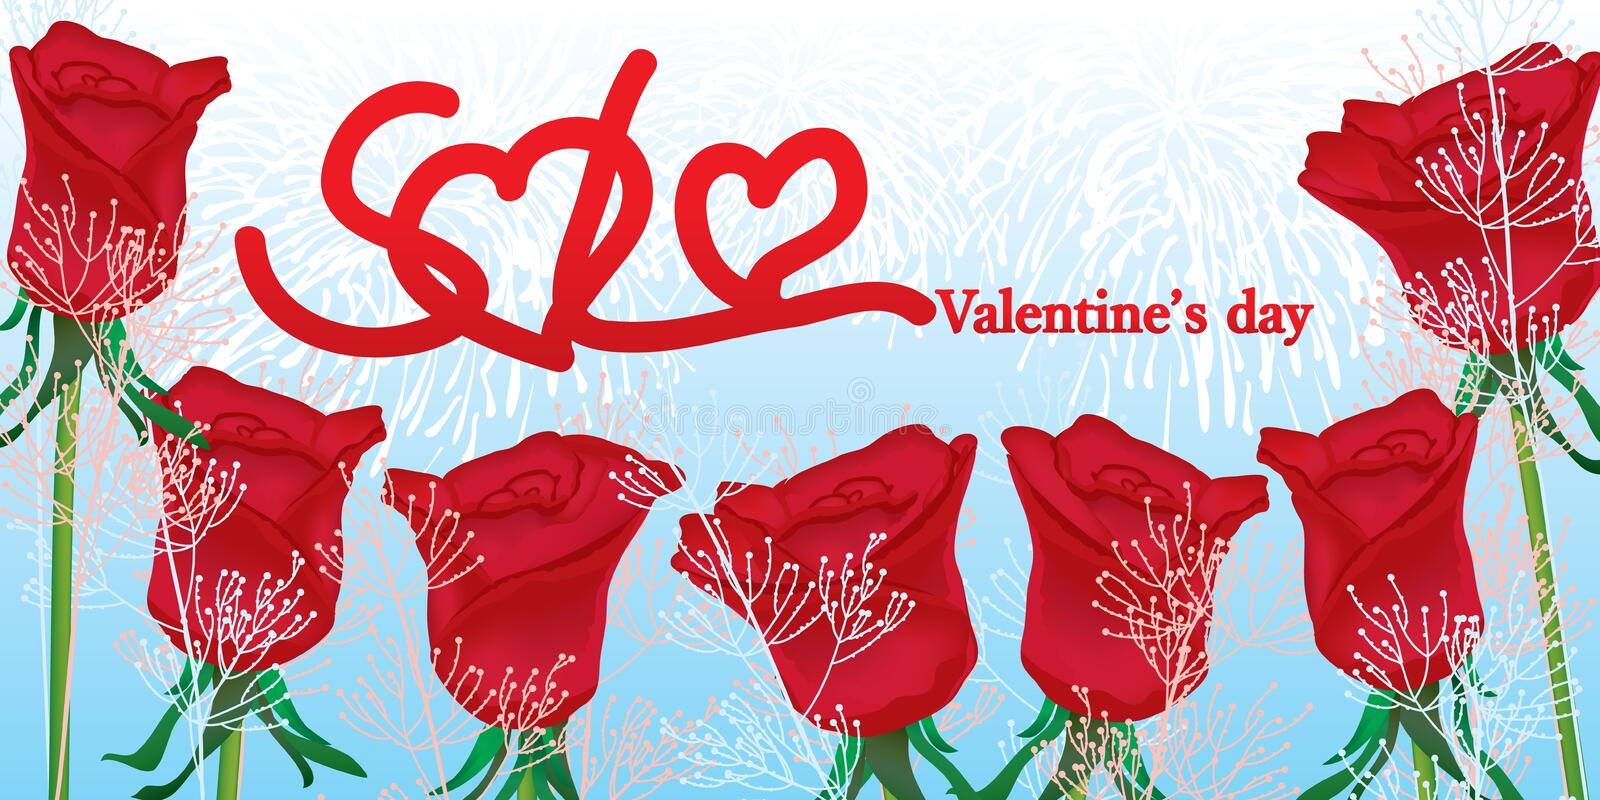 Red rose sale when valentine's day royalty free illustration